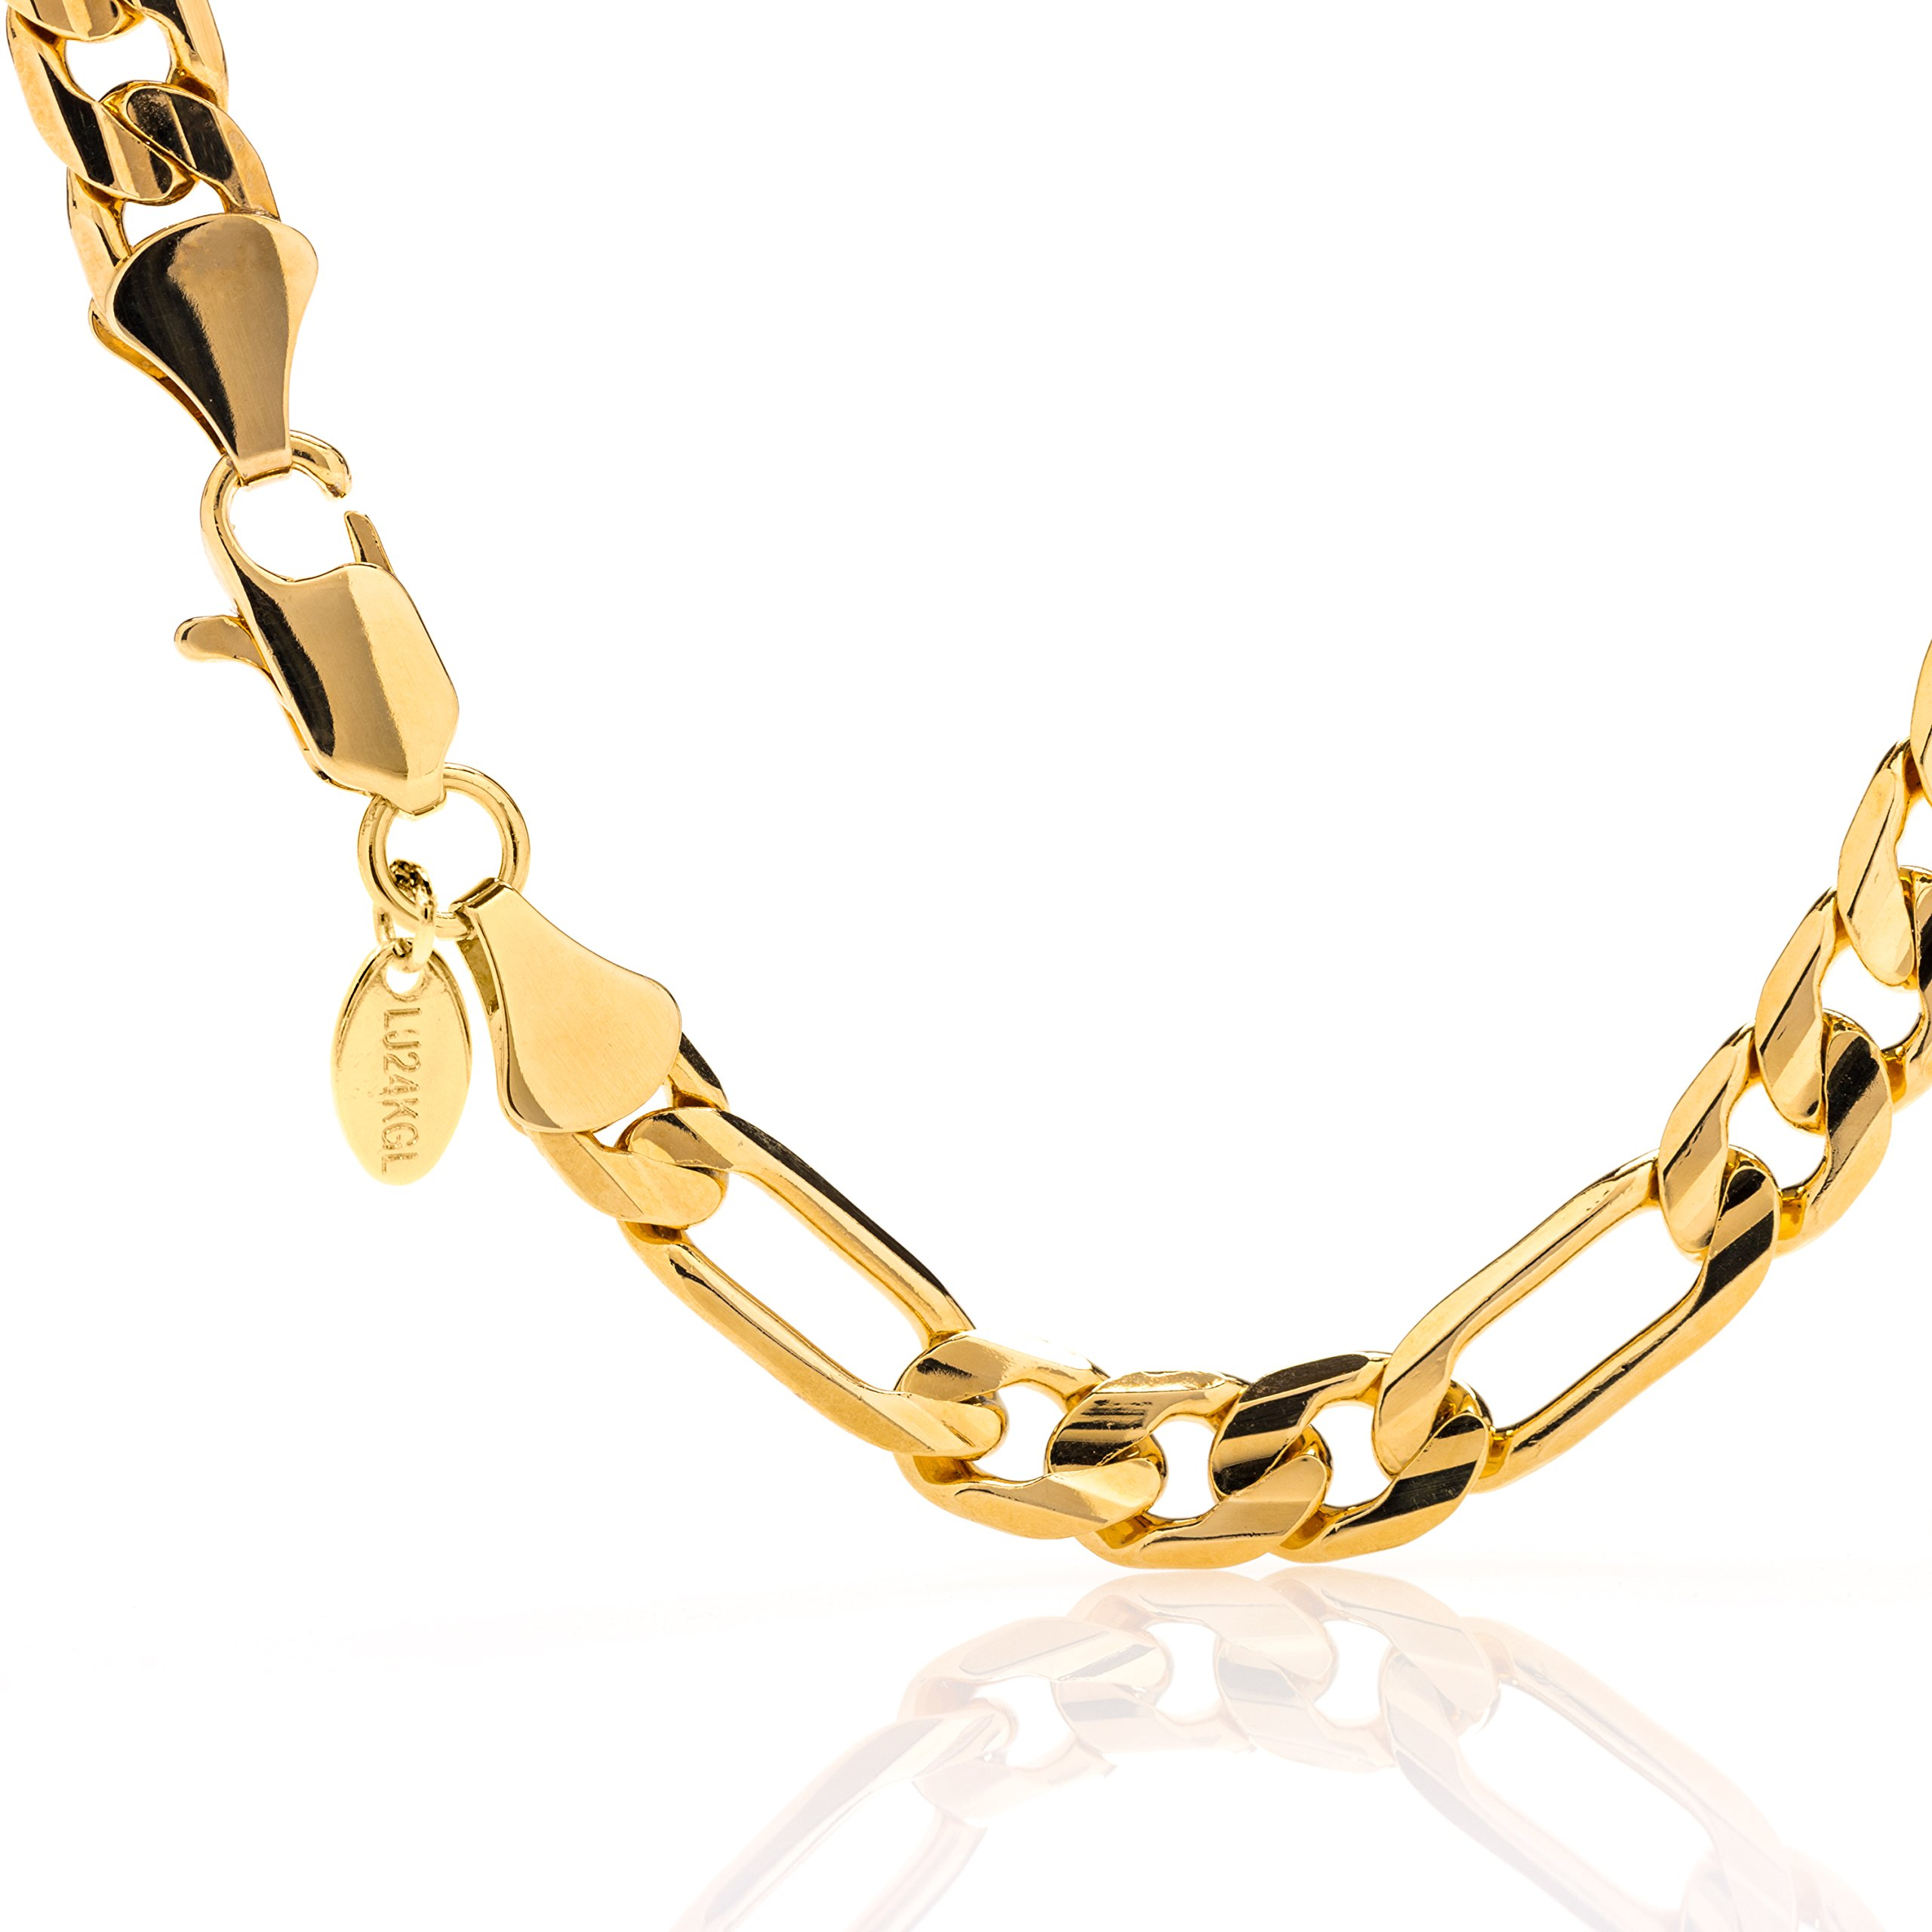 Lifetime Jewelry Gold Bracelets for Men & Women [ 9mm Figaro Chain ] up to 20X More 24k Plating Than Other Gold Chain - Free Lifetime Replacement Guaranteed - Durable Figaro Wrist Bracelet (8.00) by Lifetime Jewelry